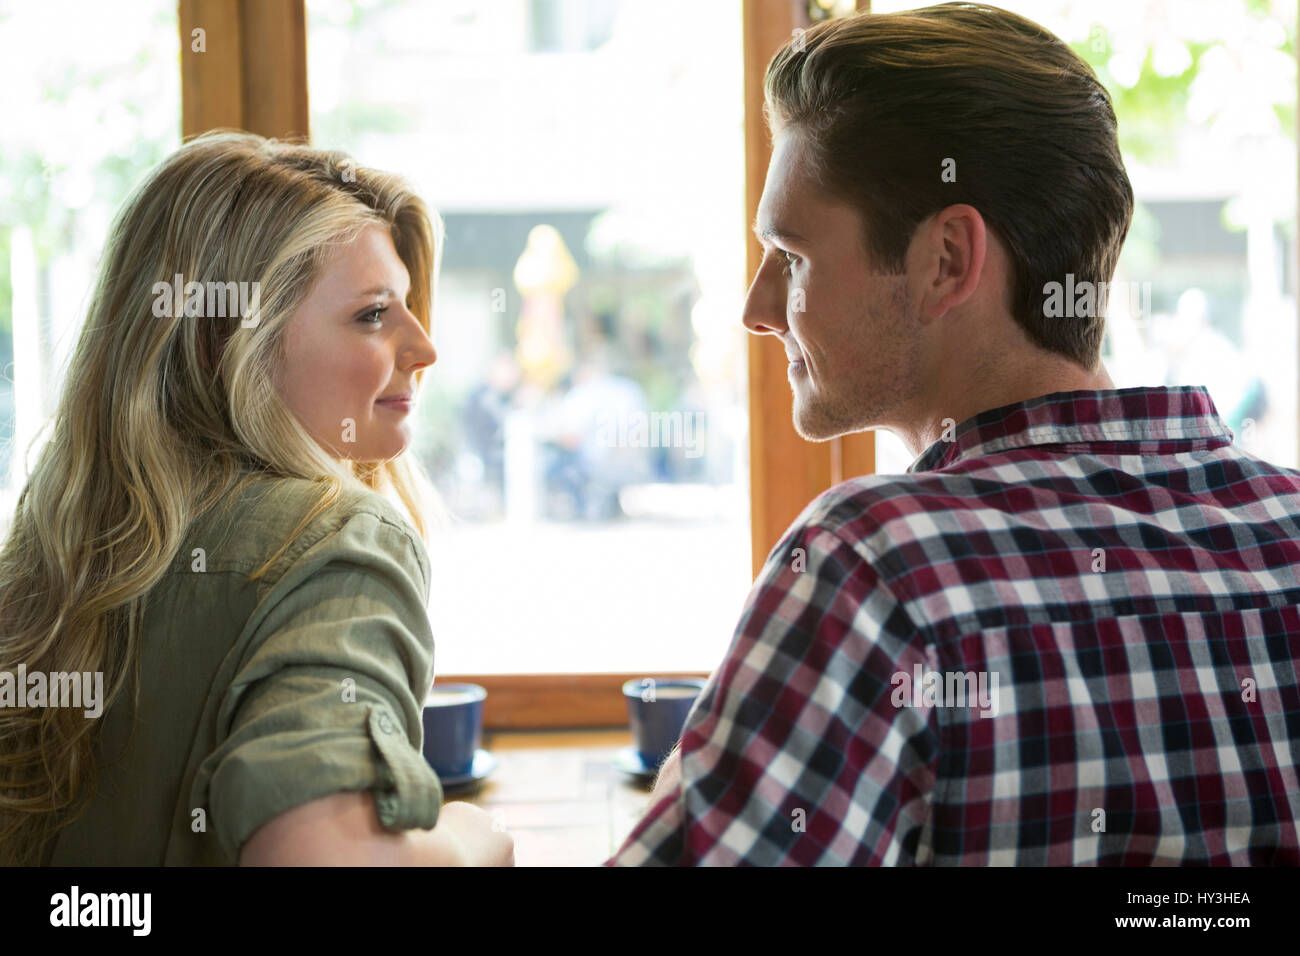 Loving young couple looking at each other in coffee house - Stock Image